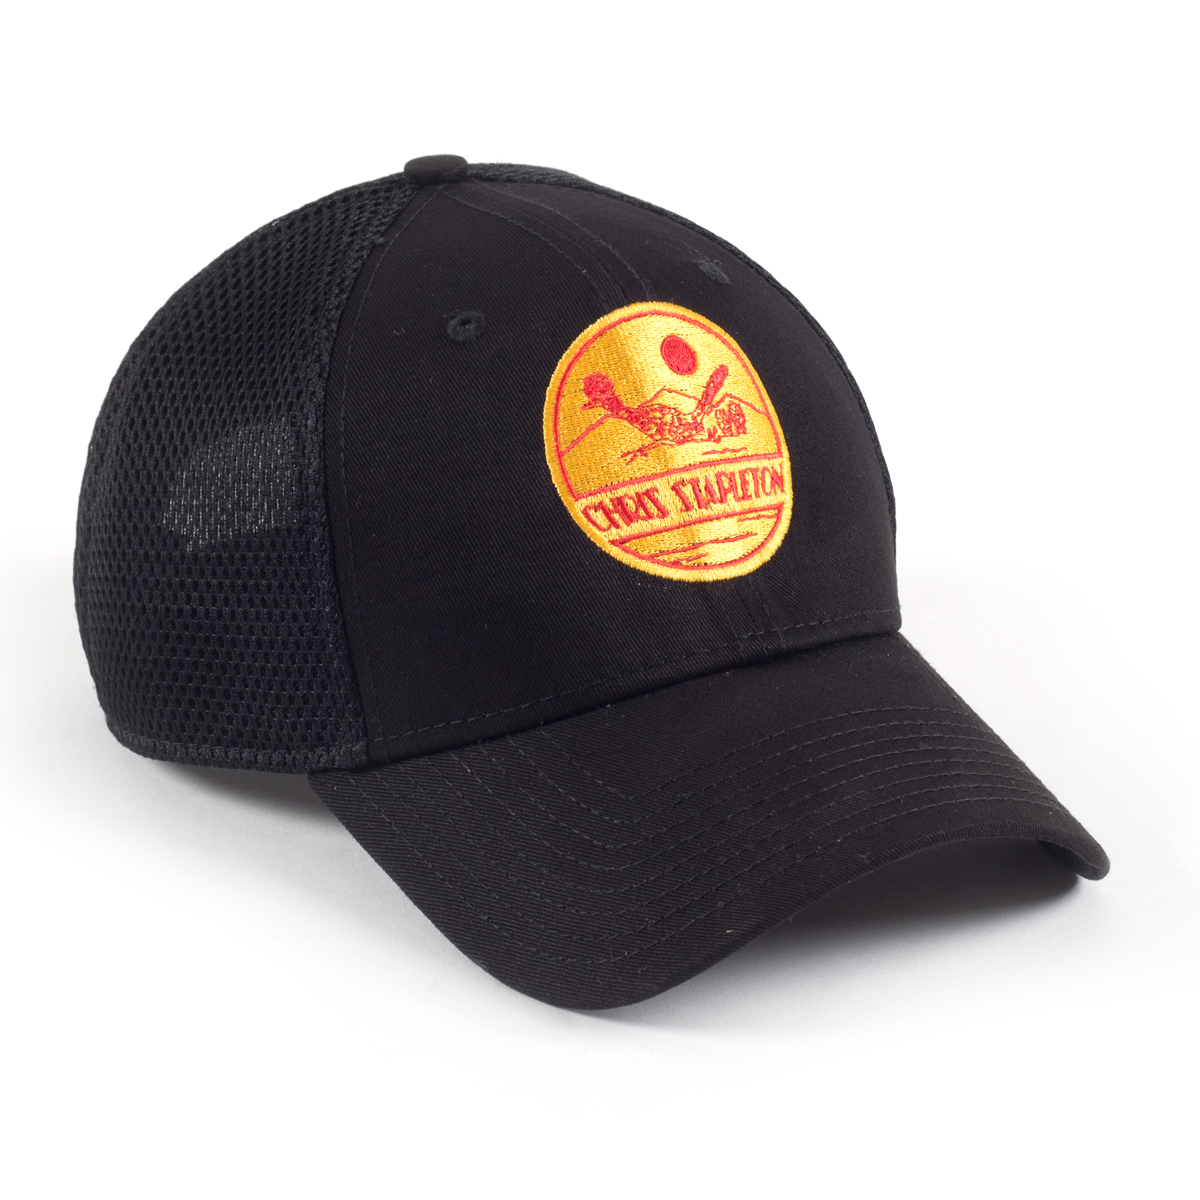 Chris Stapleton Black Roadrunner Trucker Hat